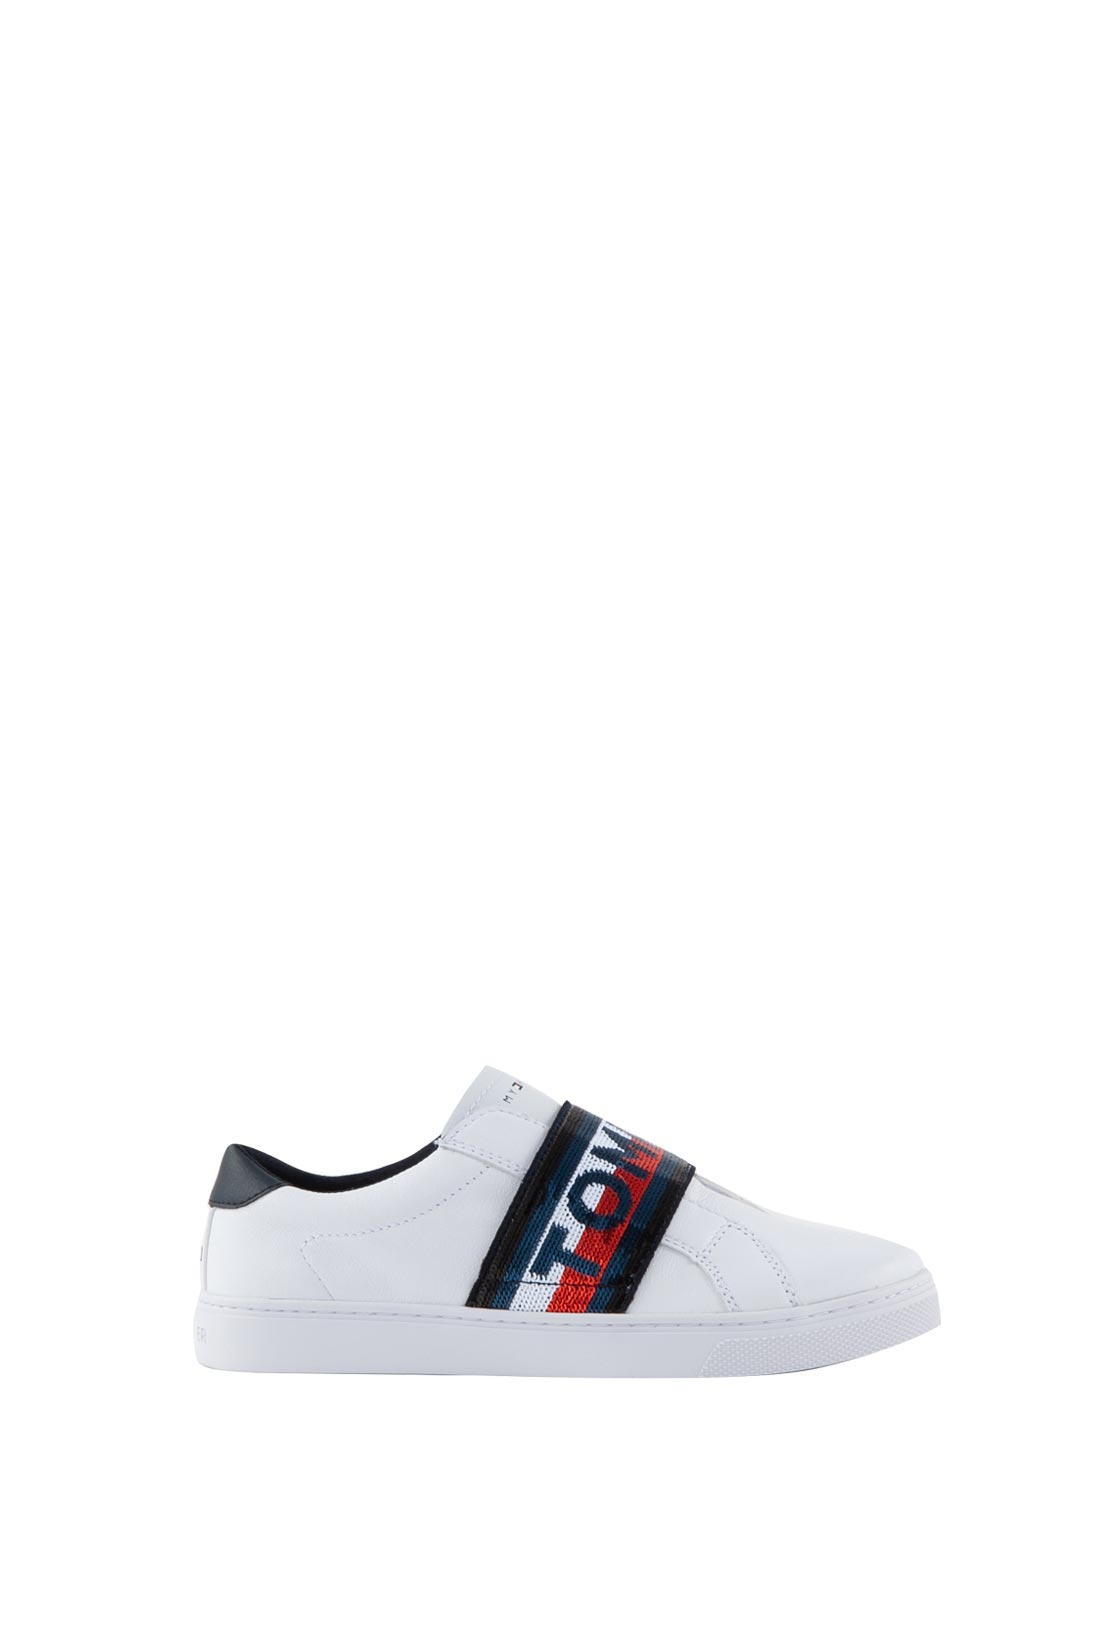 erotisk Start koppla av  TOMMY HILFIGER - Women's elastic glitter slip on sneakers - Push96.com